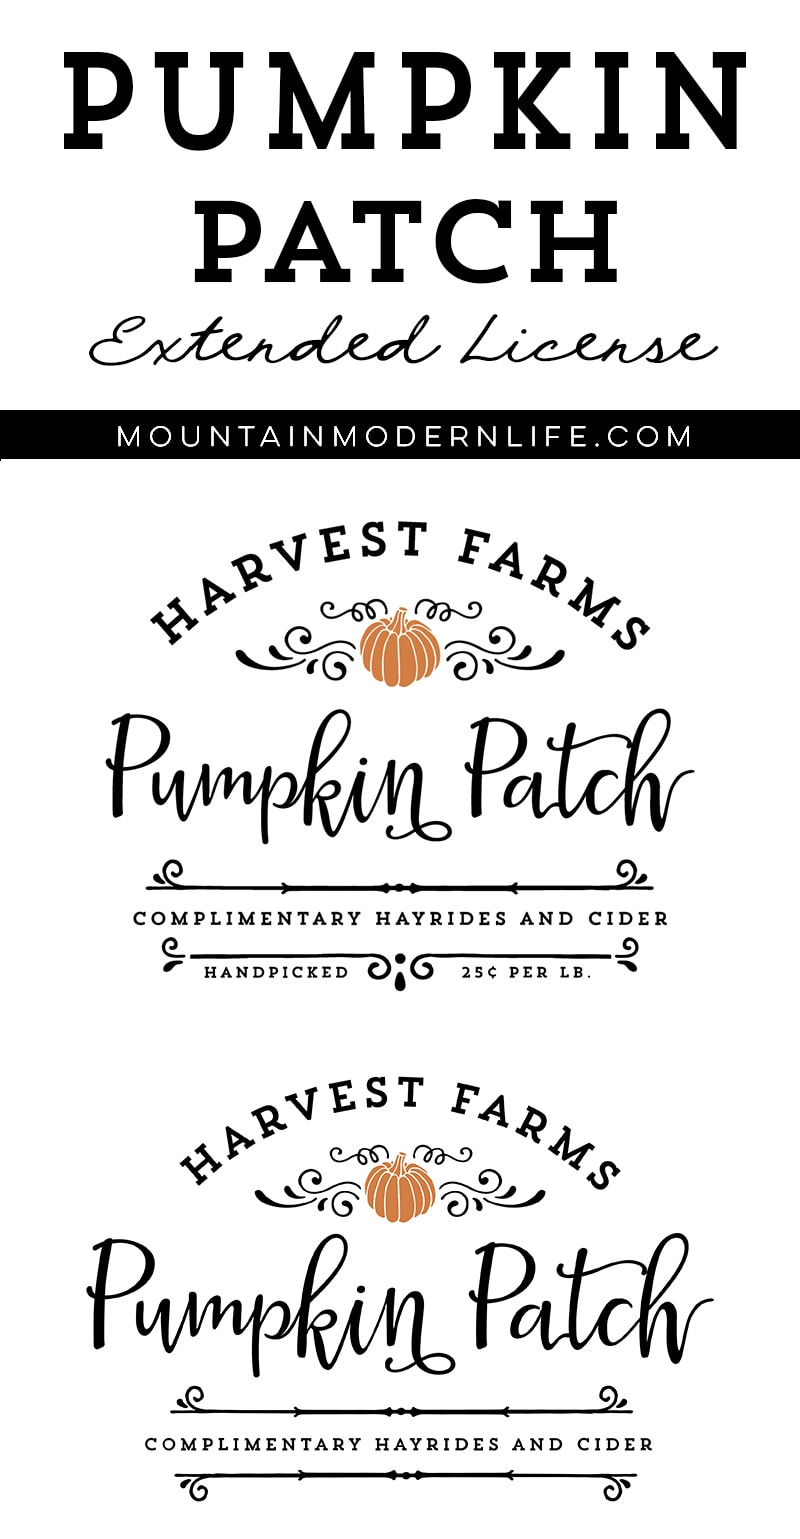 Make your own holiday signs to sell with this Harvest Farms Pumpkin Patch Extended License! Multiple Options Available! MountainModernLife.com